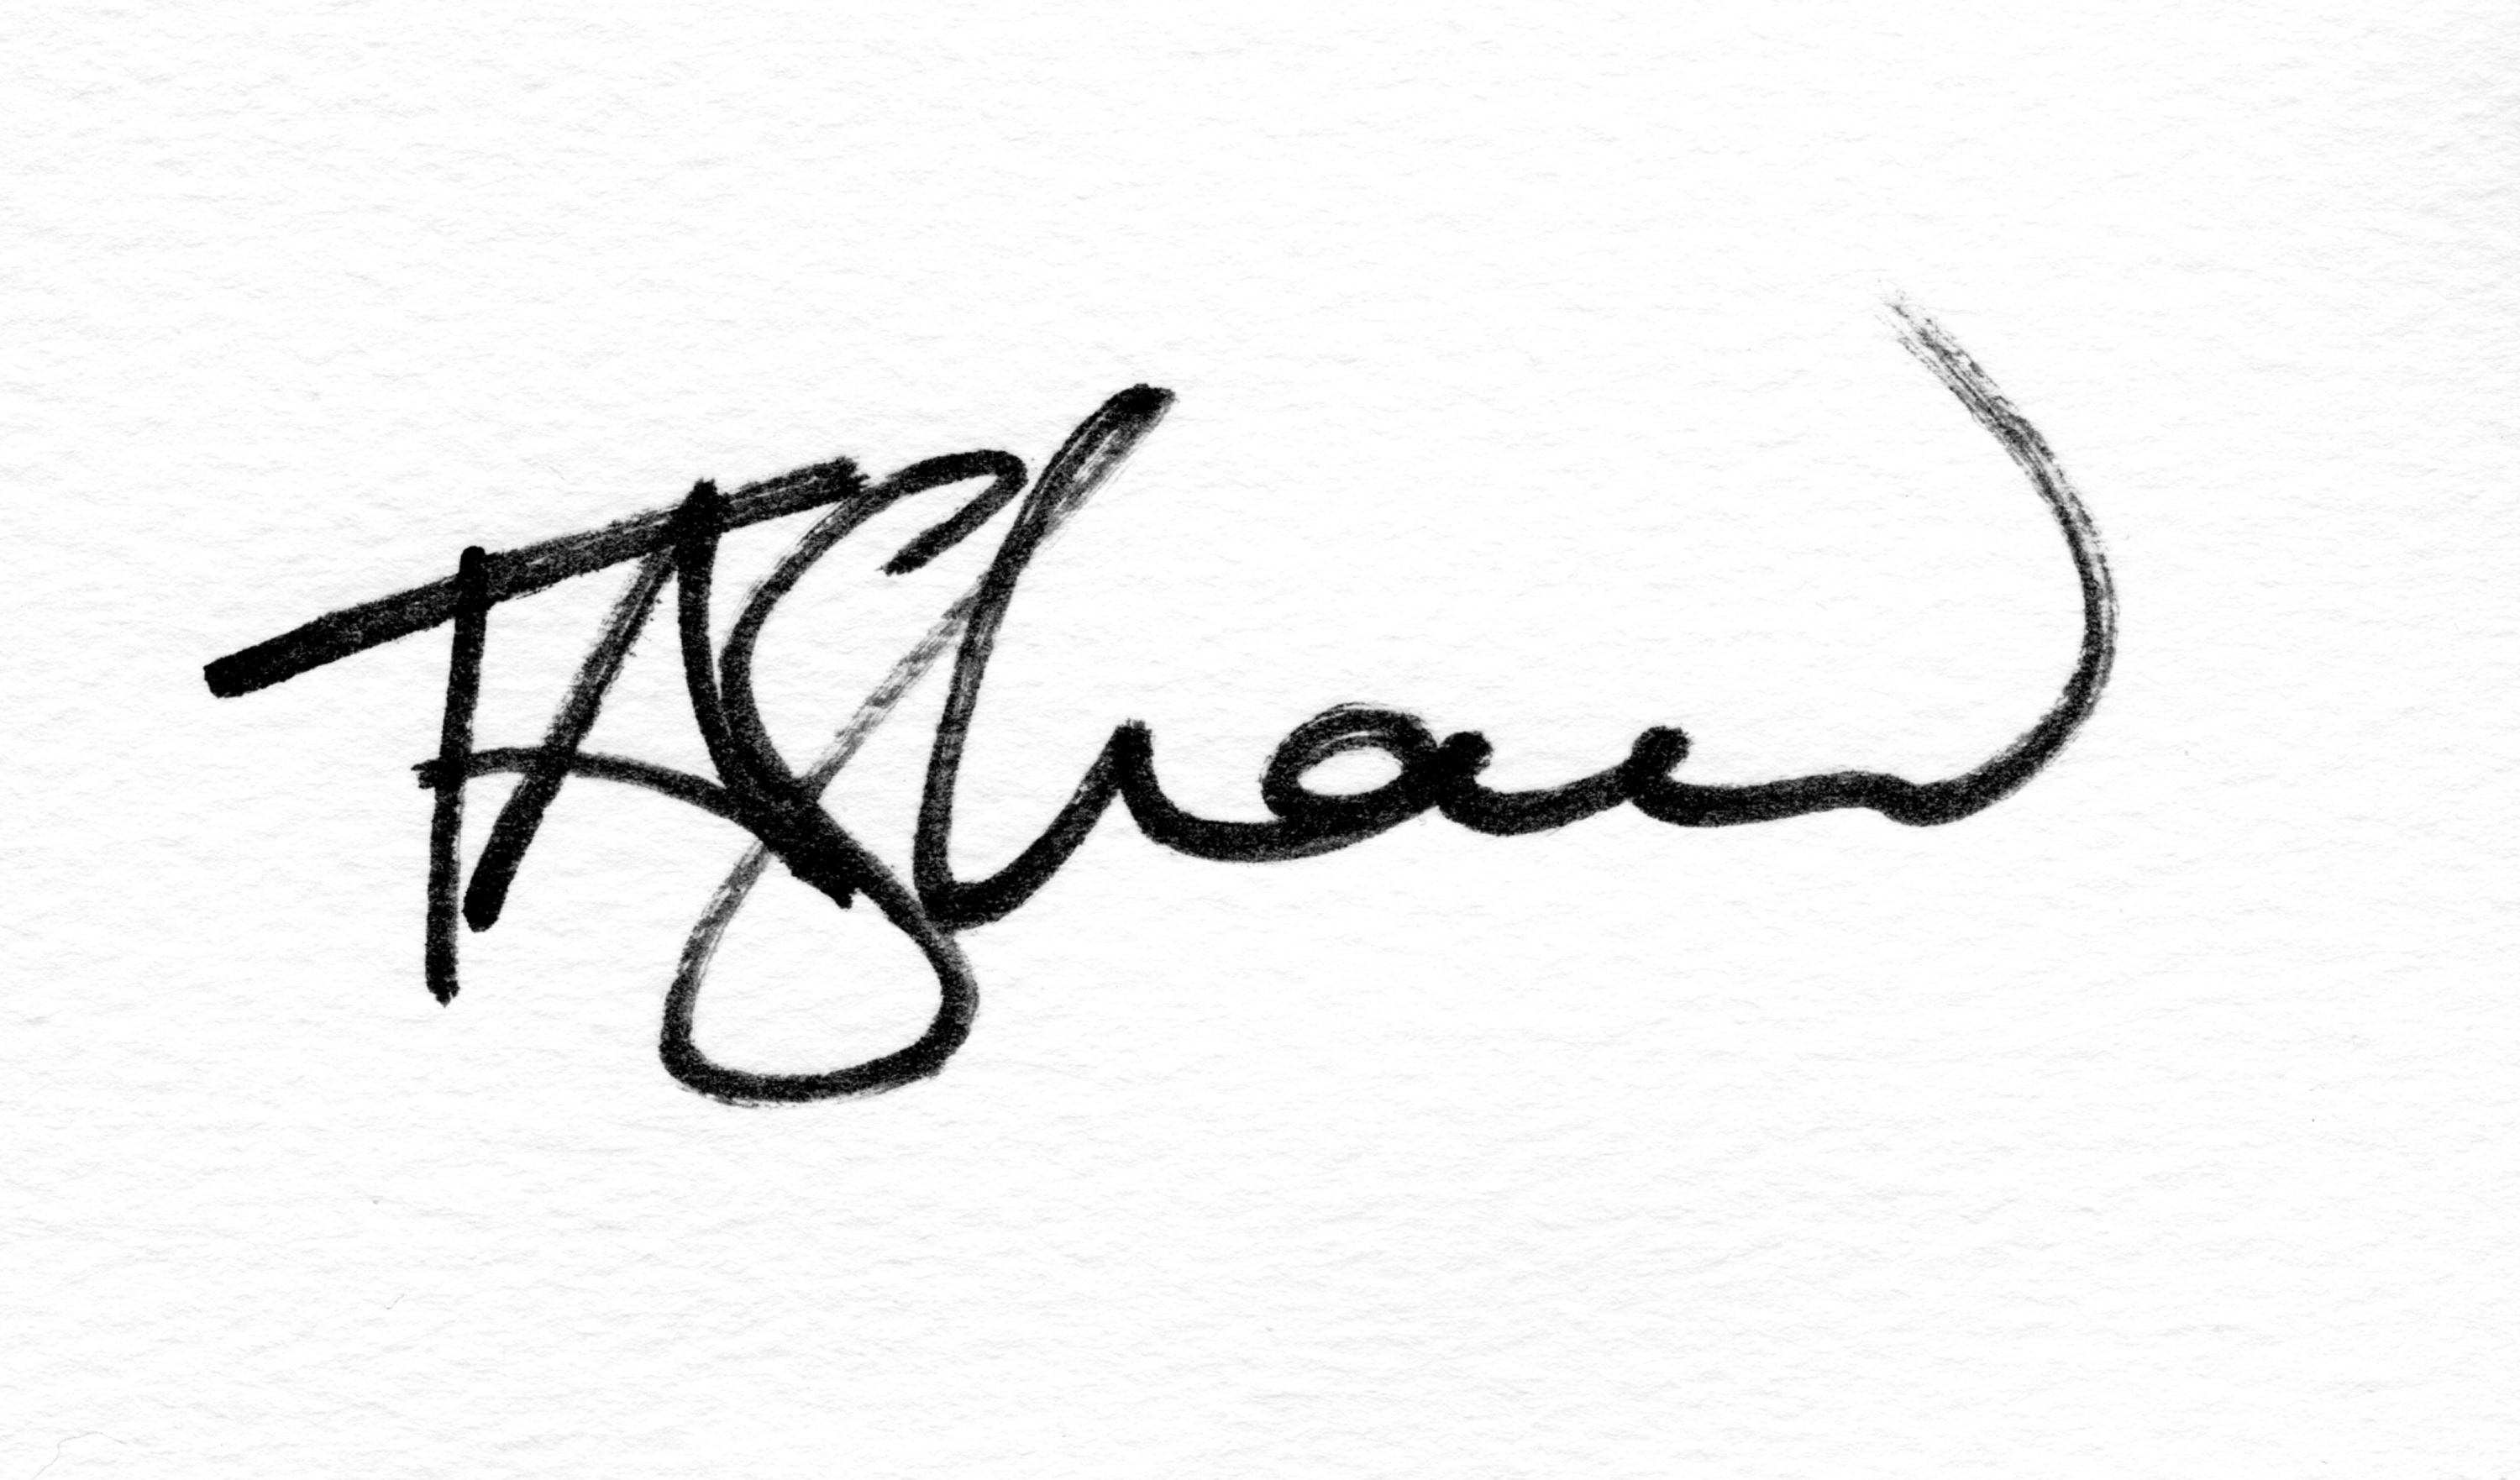 Theresa Shaw's Signature